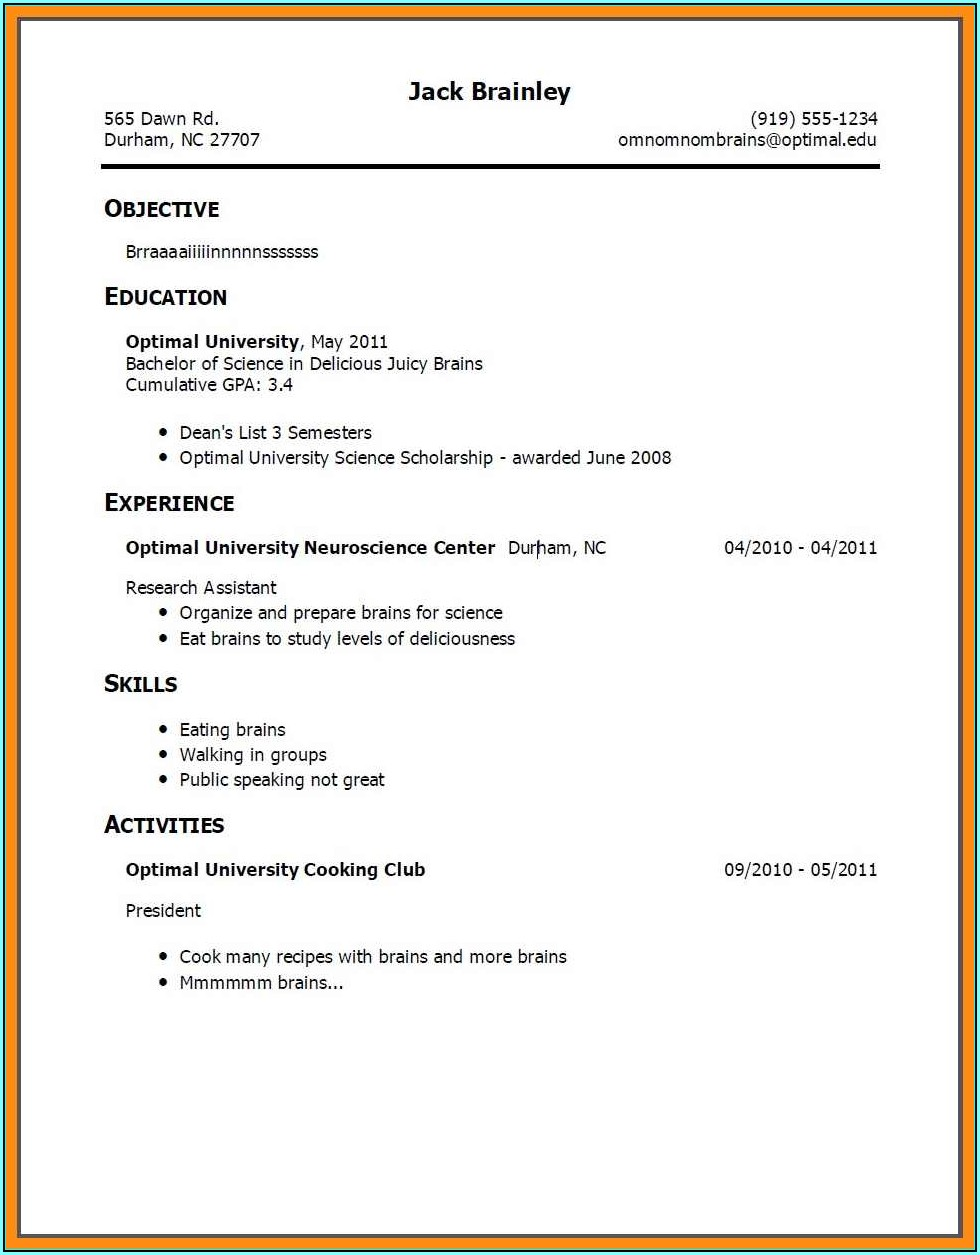 How To Build A Resume For Someone With No Work Experience